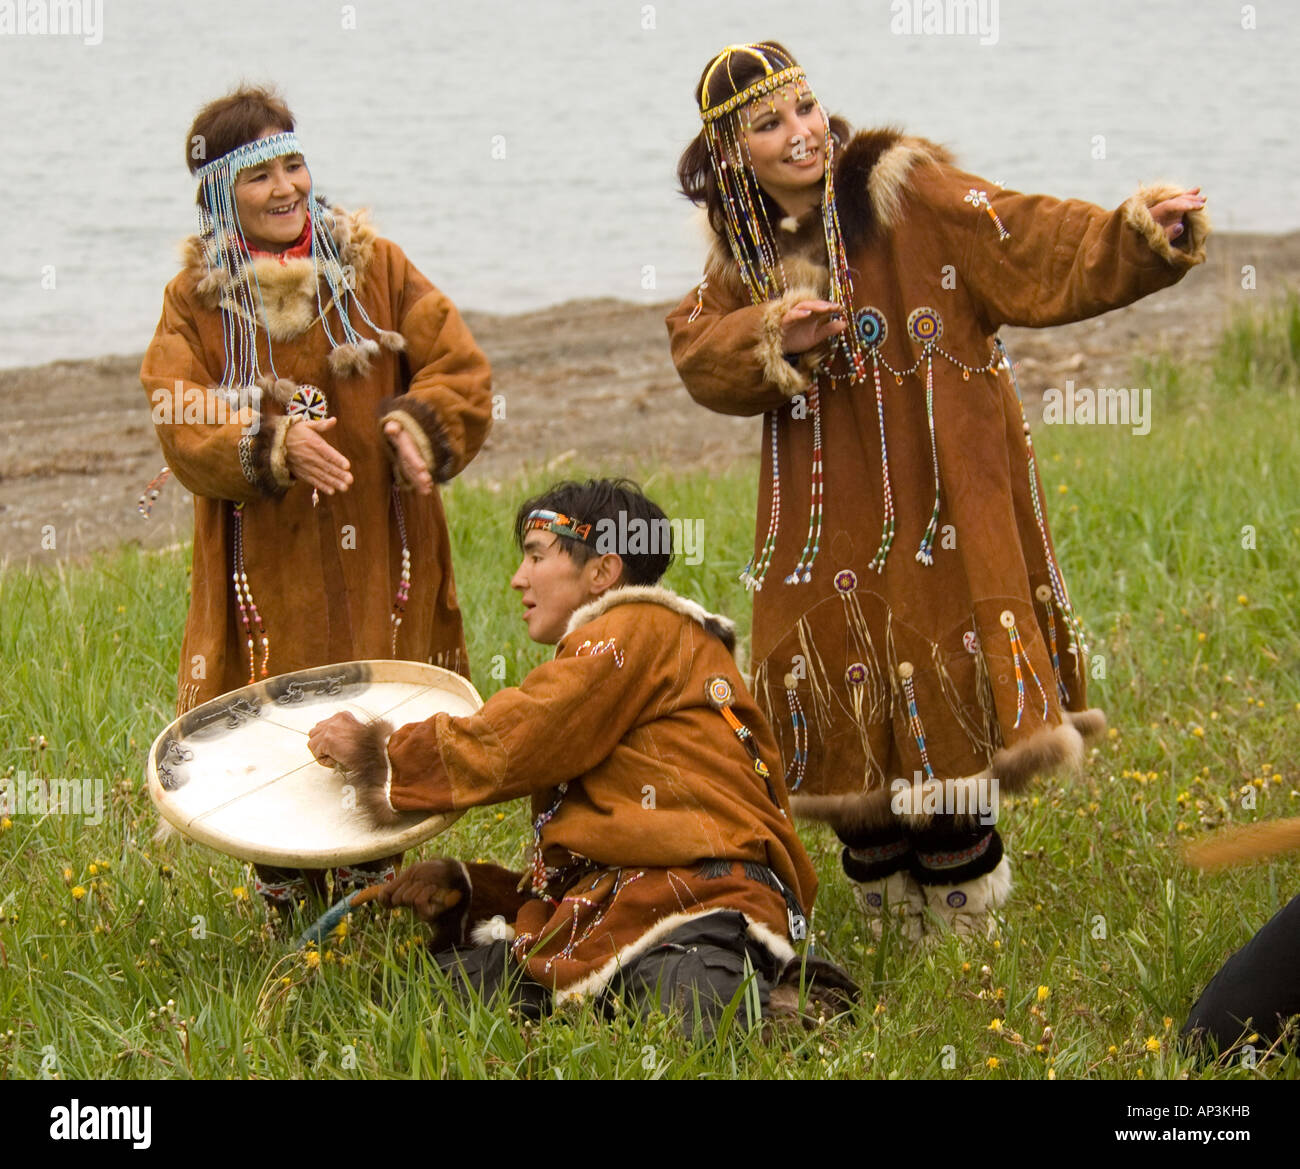 People and Cultures in Kamchatka